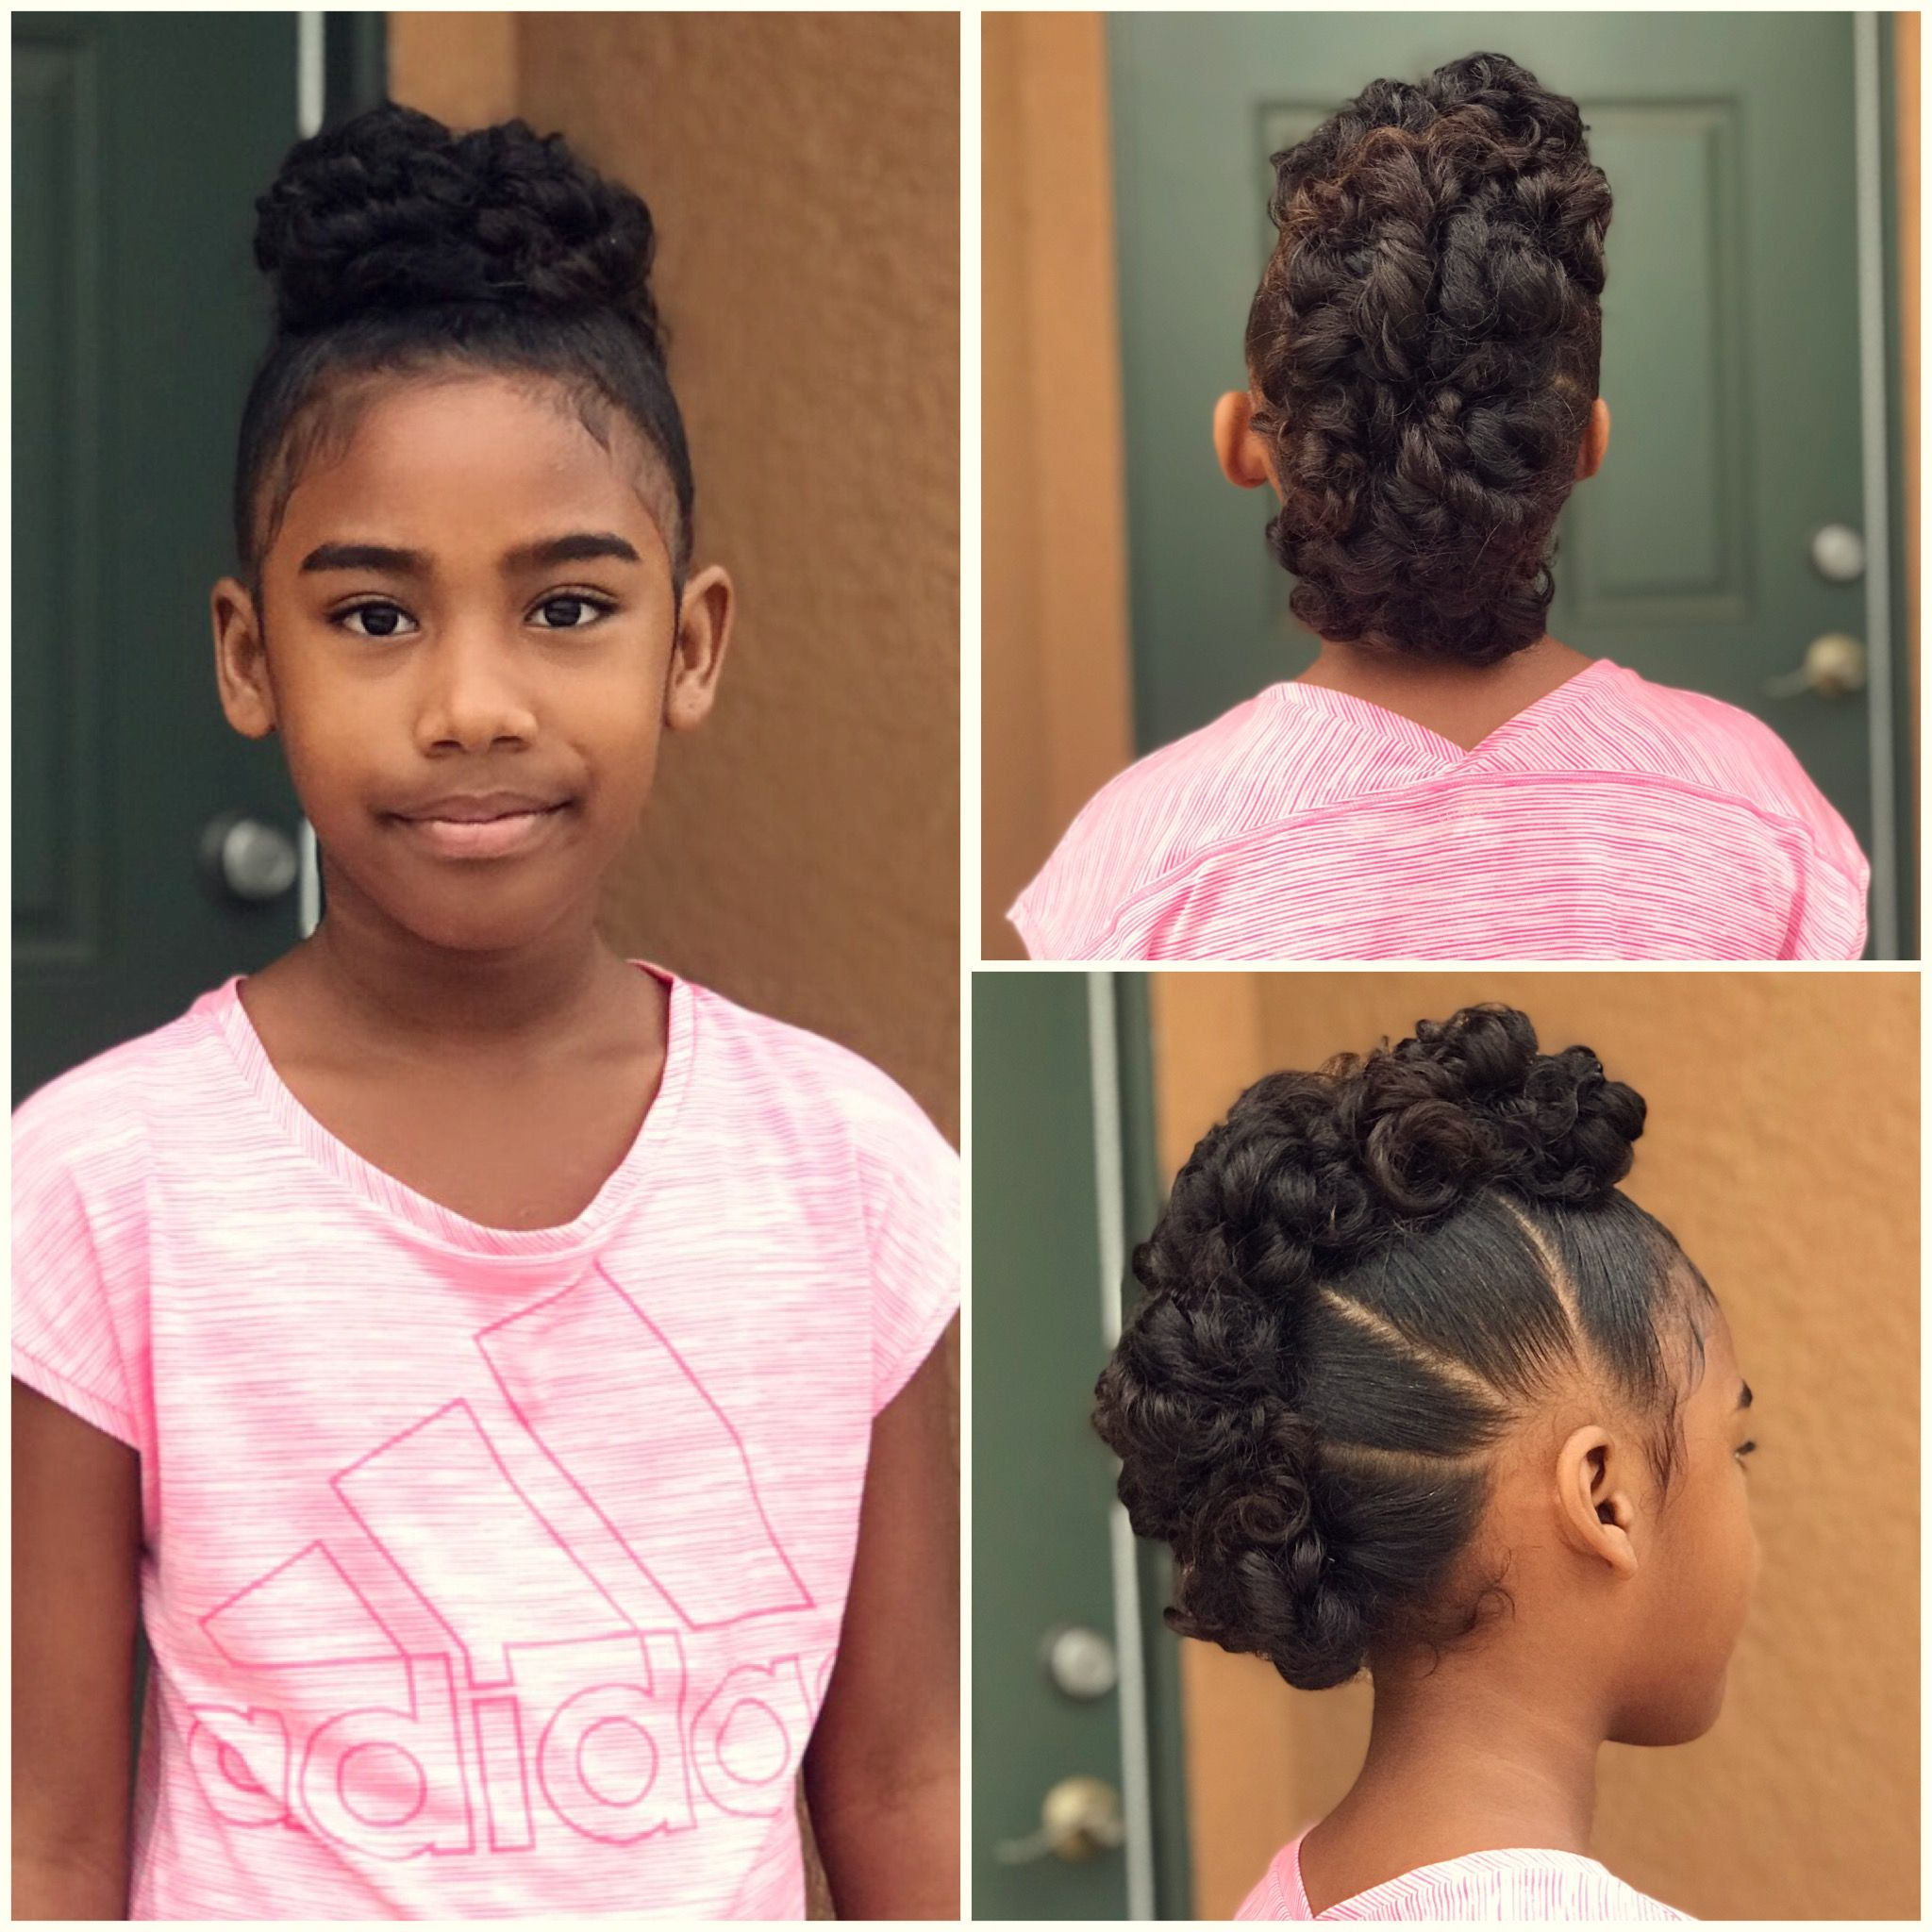 mixed hair, curly, curly hair, curly mohawk, blasian, twisty